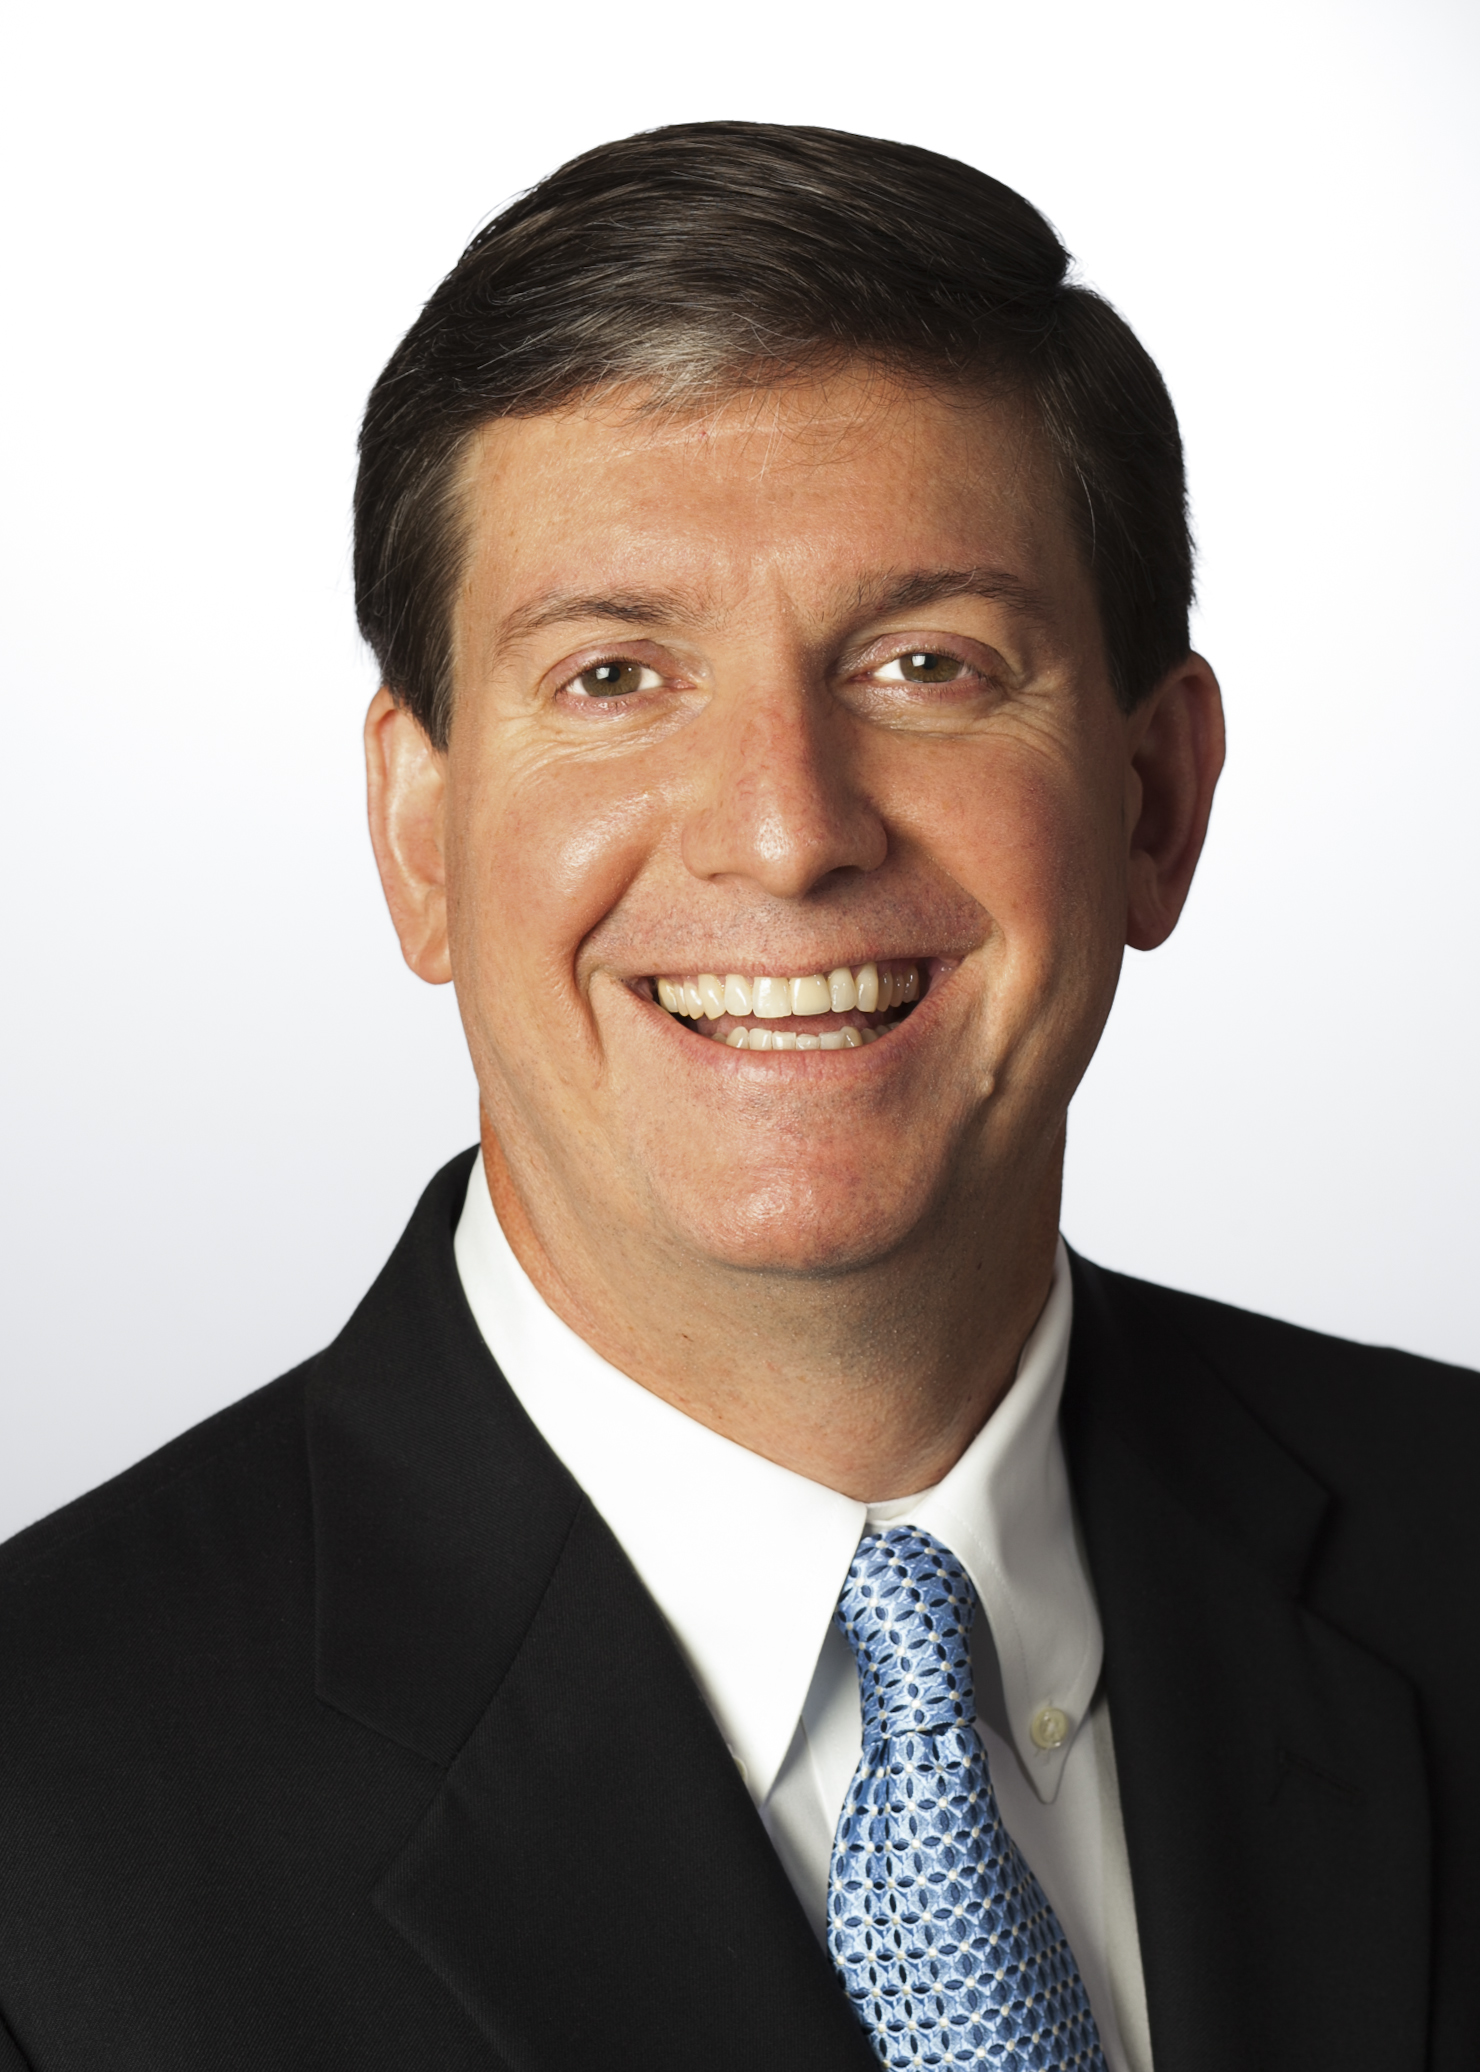 Jim David, financial advisor